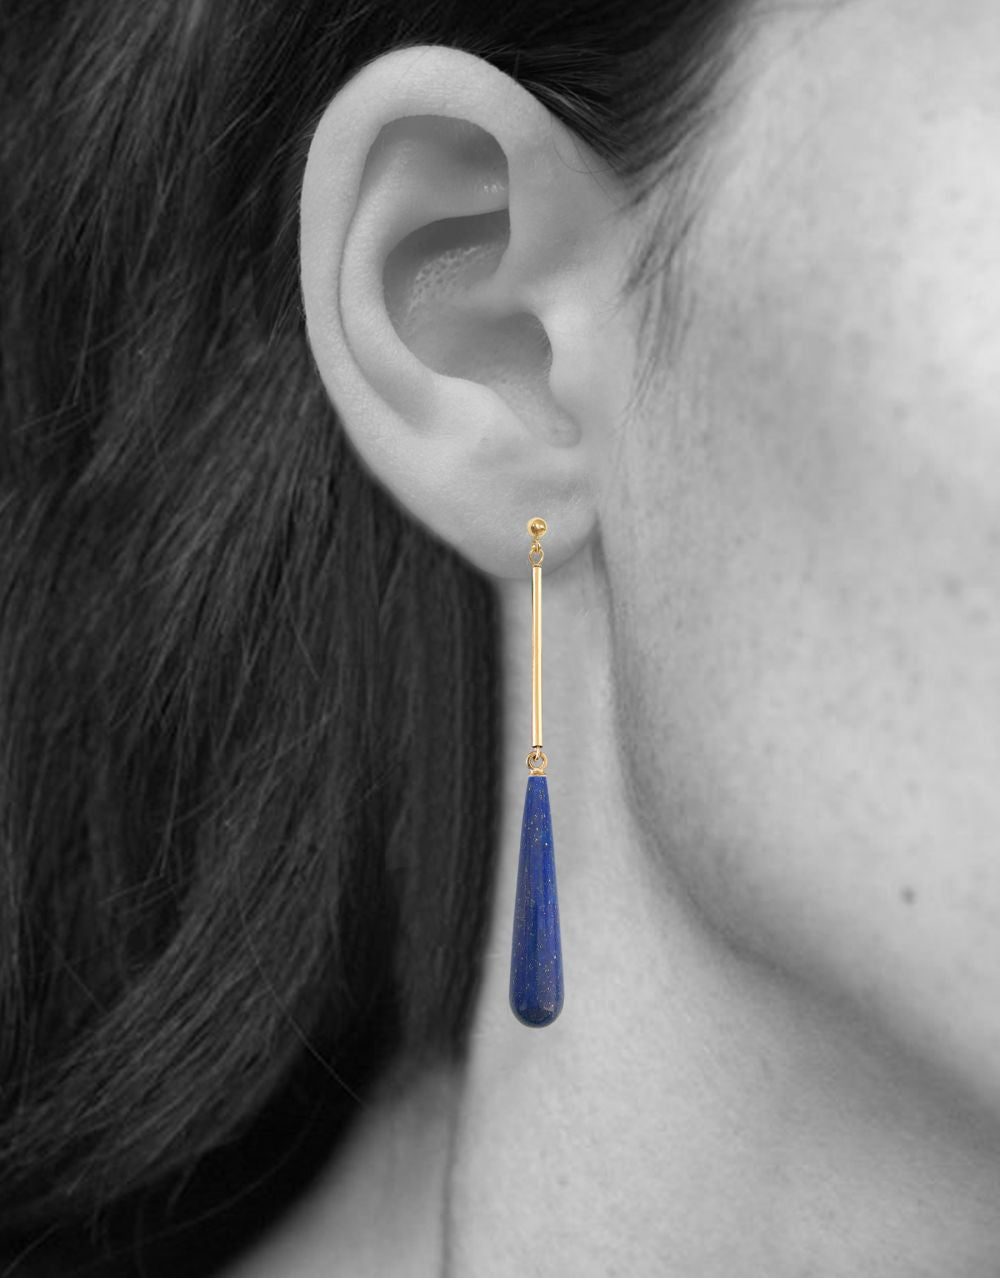 AMBROSIA EARRINGS | 14K Yellow Gold with Lapis Lazuli - Eddera